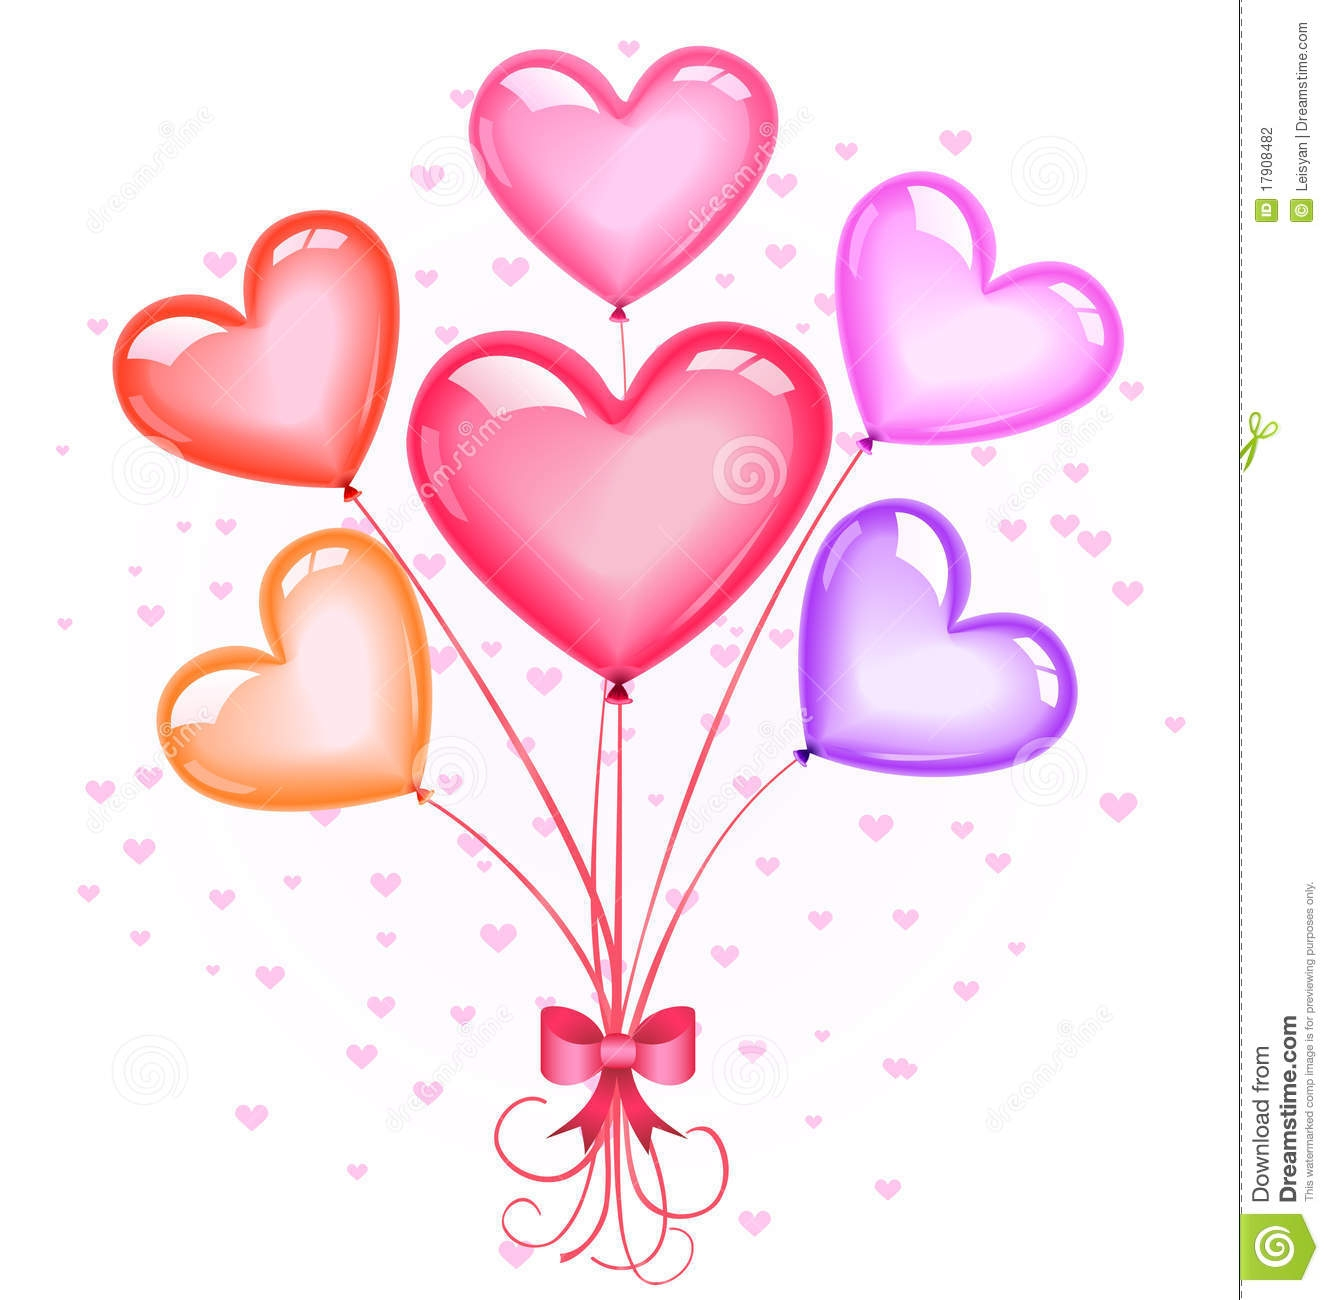 23 Valentine Heart Coloring Pages Collections | FREE COLORING PAGES ...